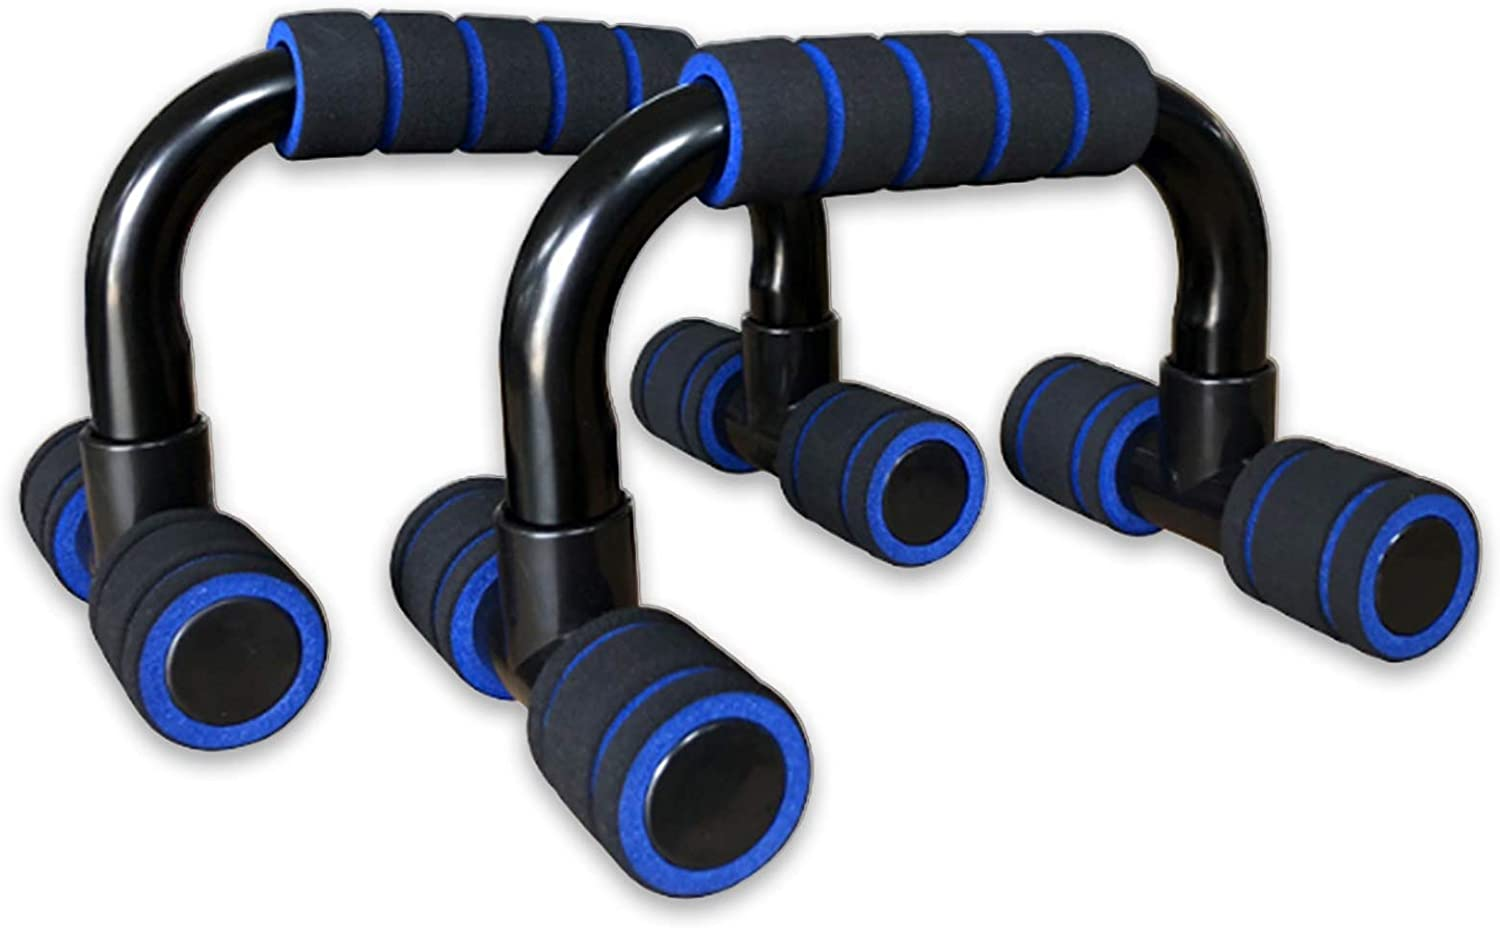 CARSA Push Up Handles for Floor,Home Workout Push Up Bars Stands with Cushioned Foam Grips & Slip Resistant Base for Muscle Ups, Pull Ups & Strength,for Both Men & Women Strength Workouts